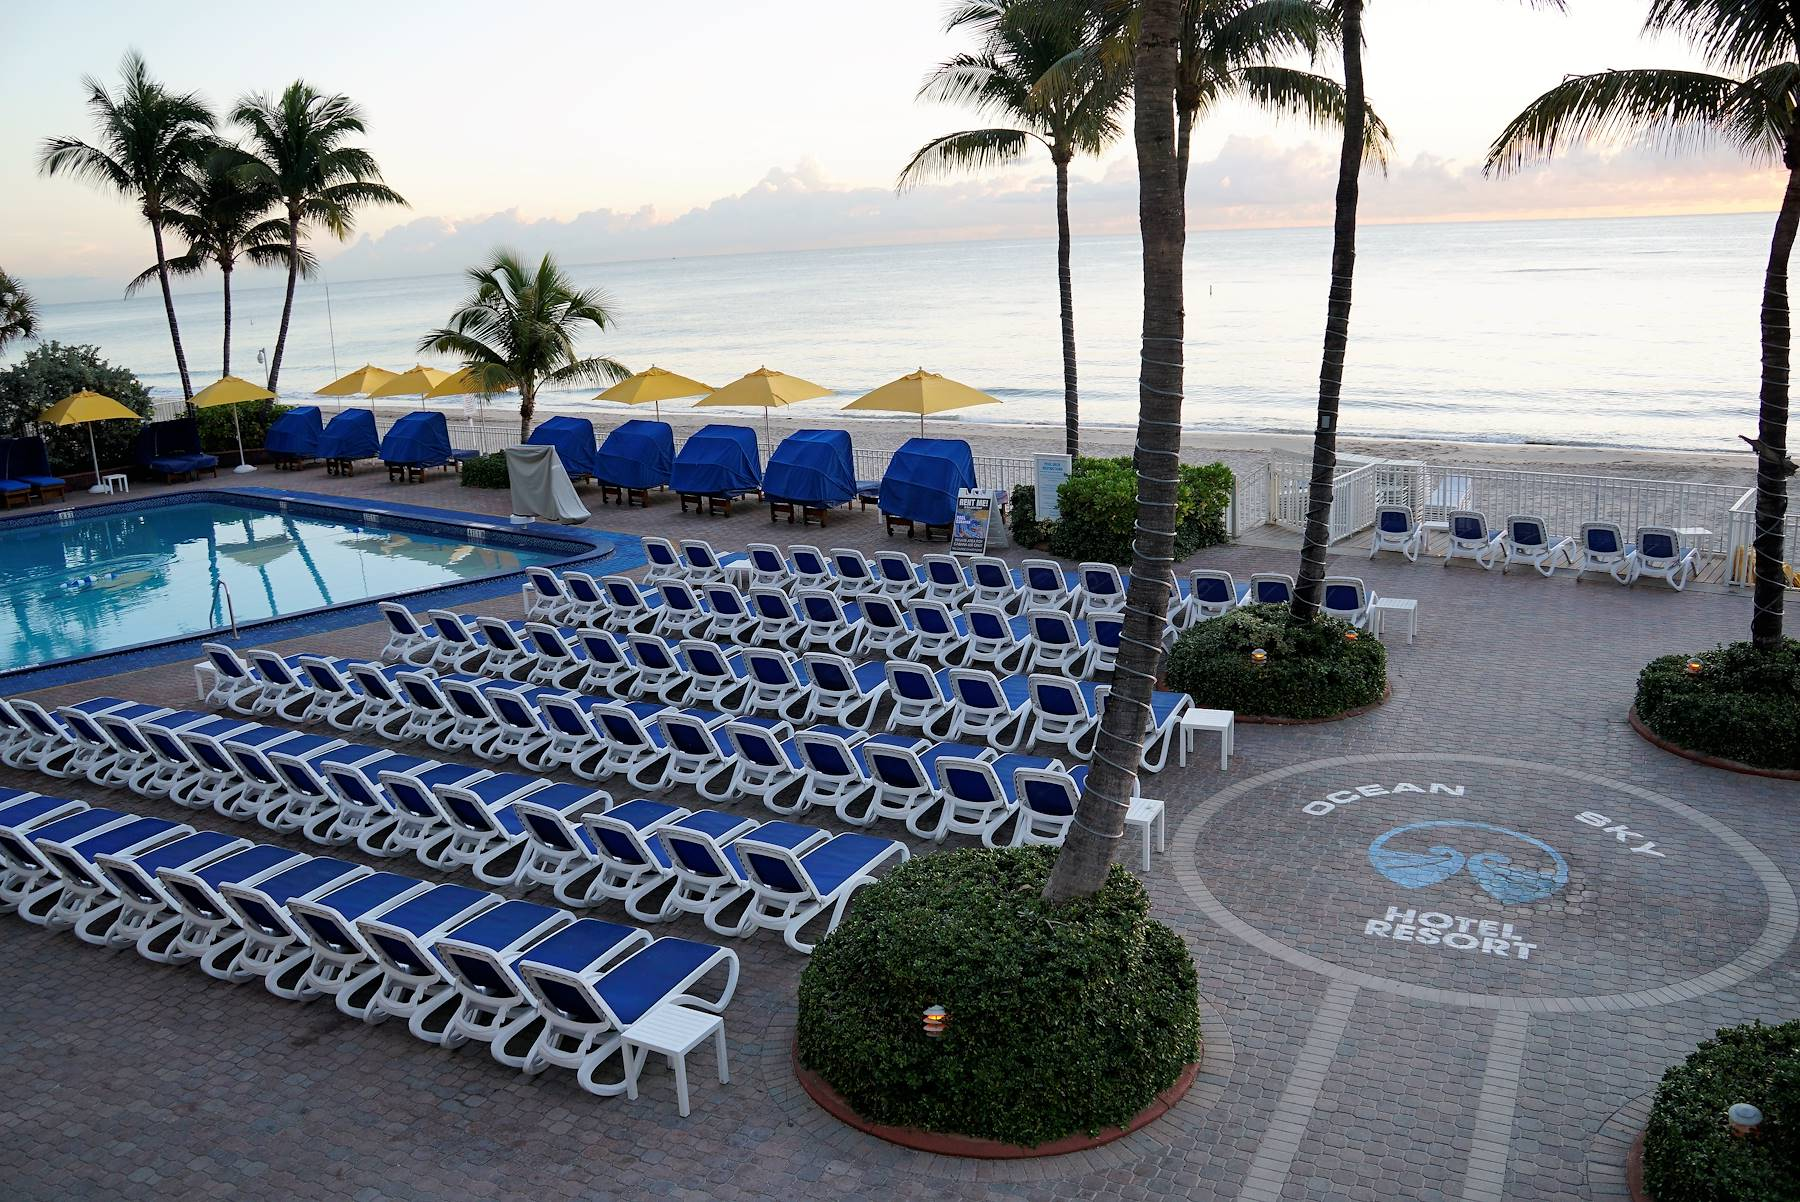 Fort Lauderdale Vacation Packages at Ocean Sky Resort